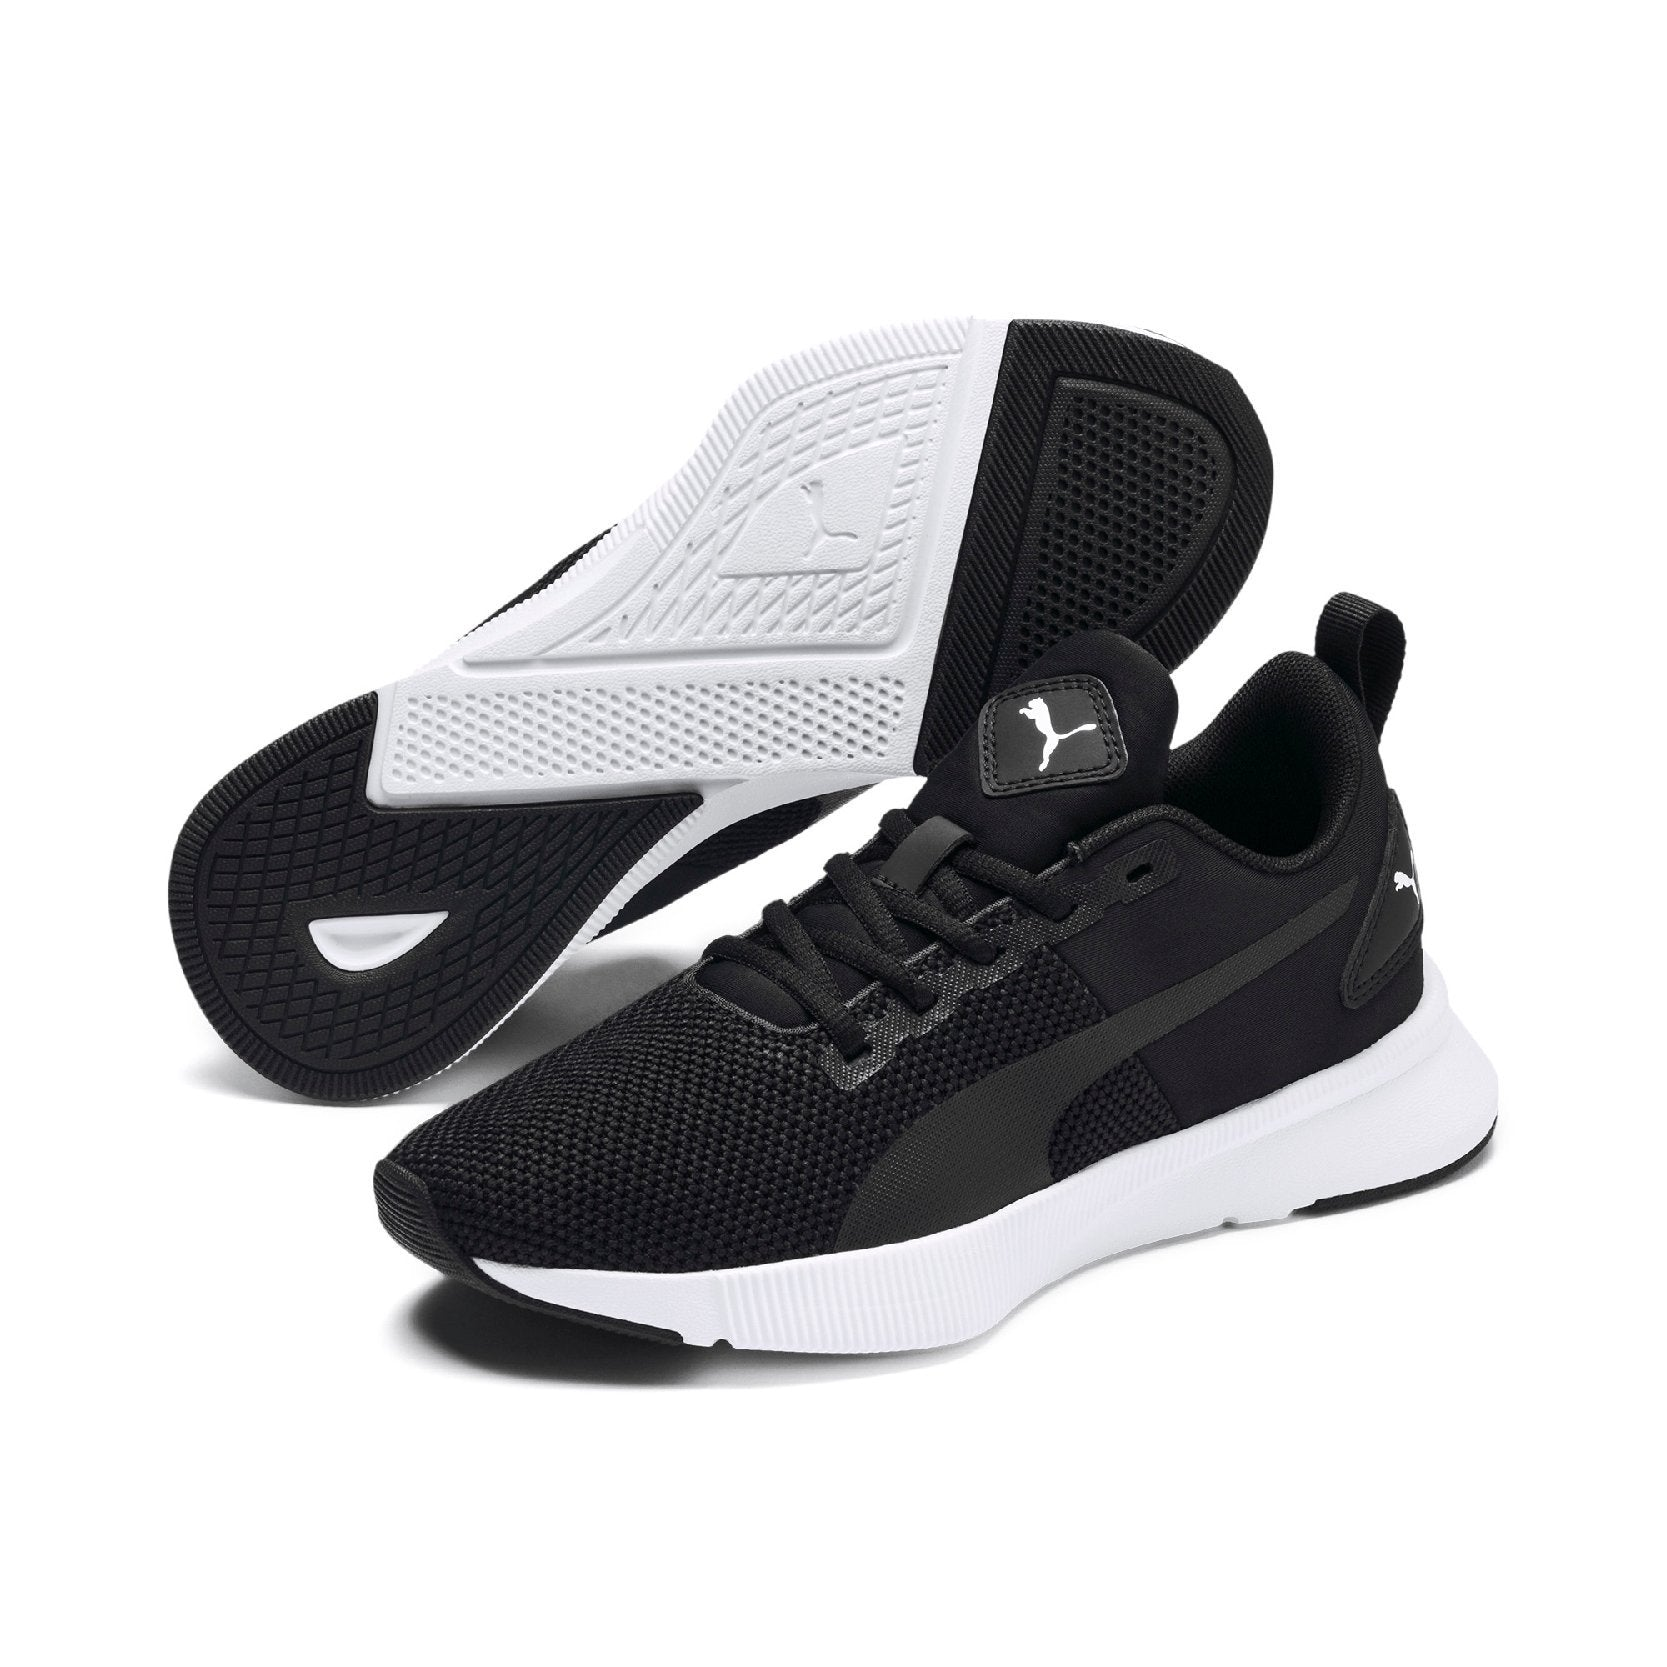 Puma Flyer Runner Junior - Puma Black-Puma White SP-Footwear-Kids Puma